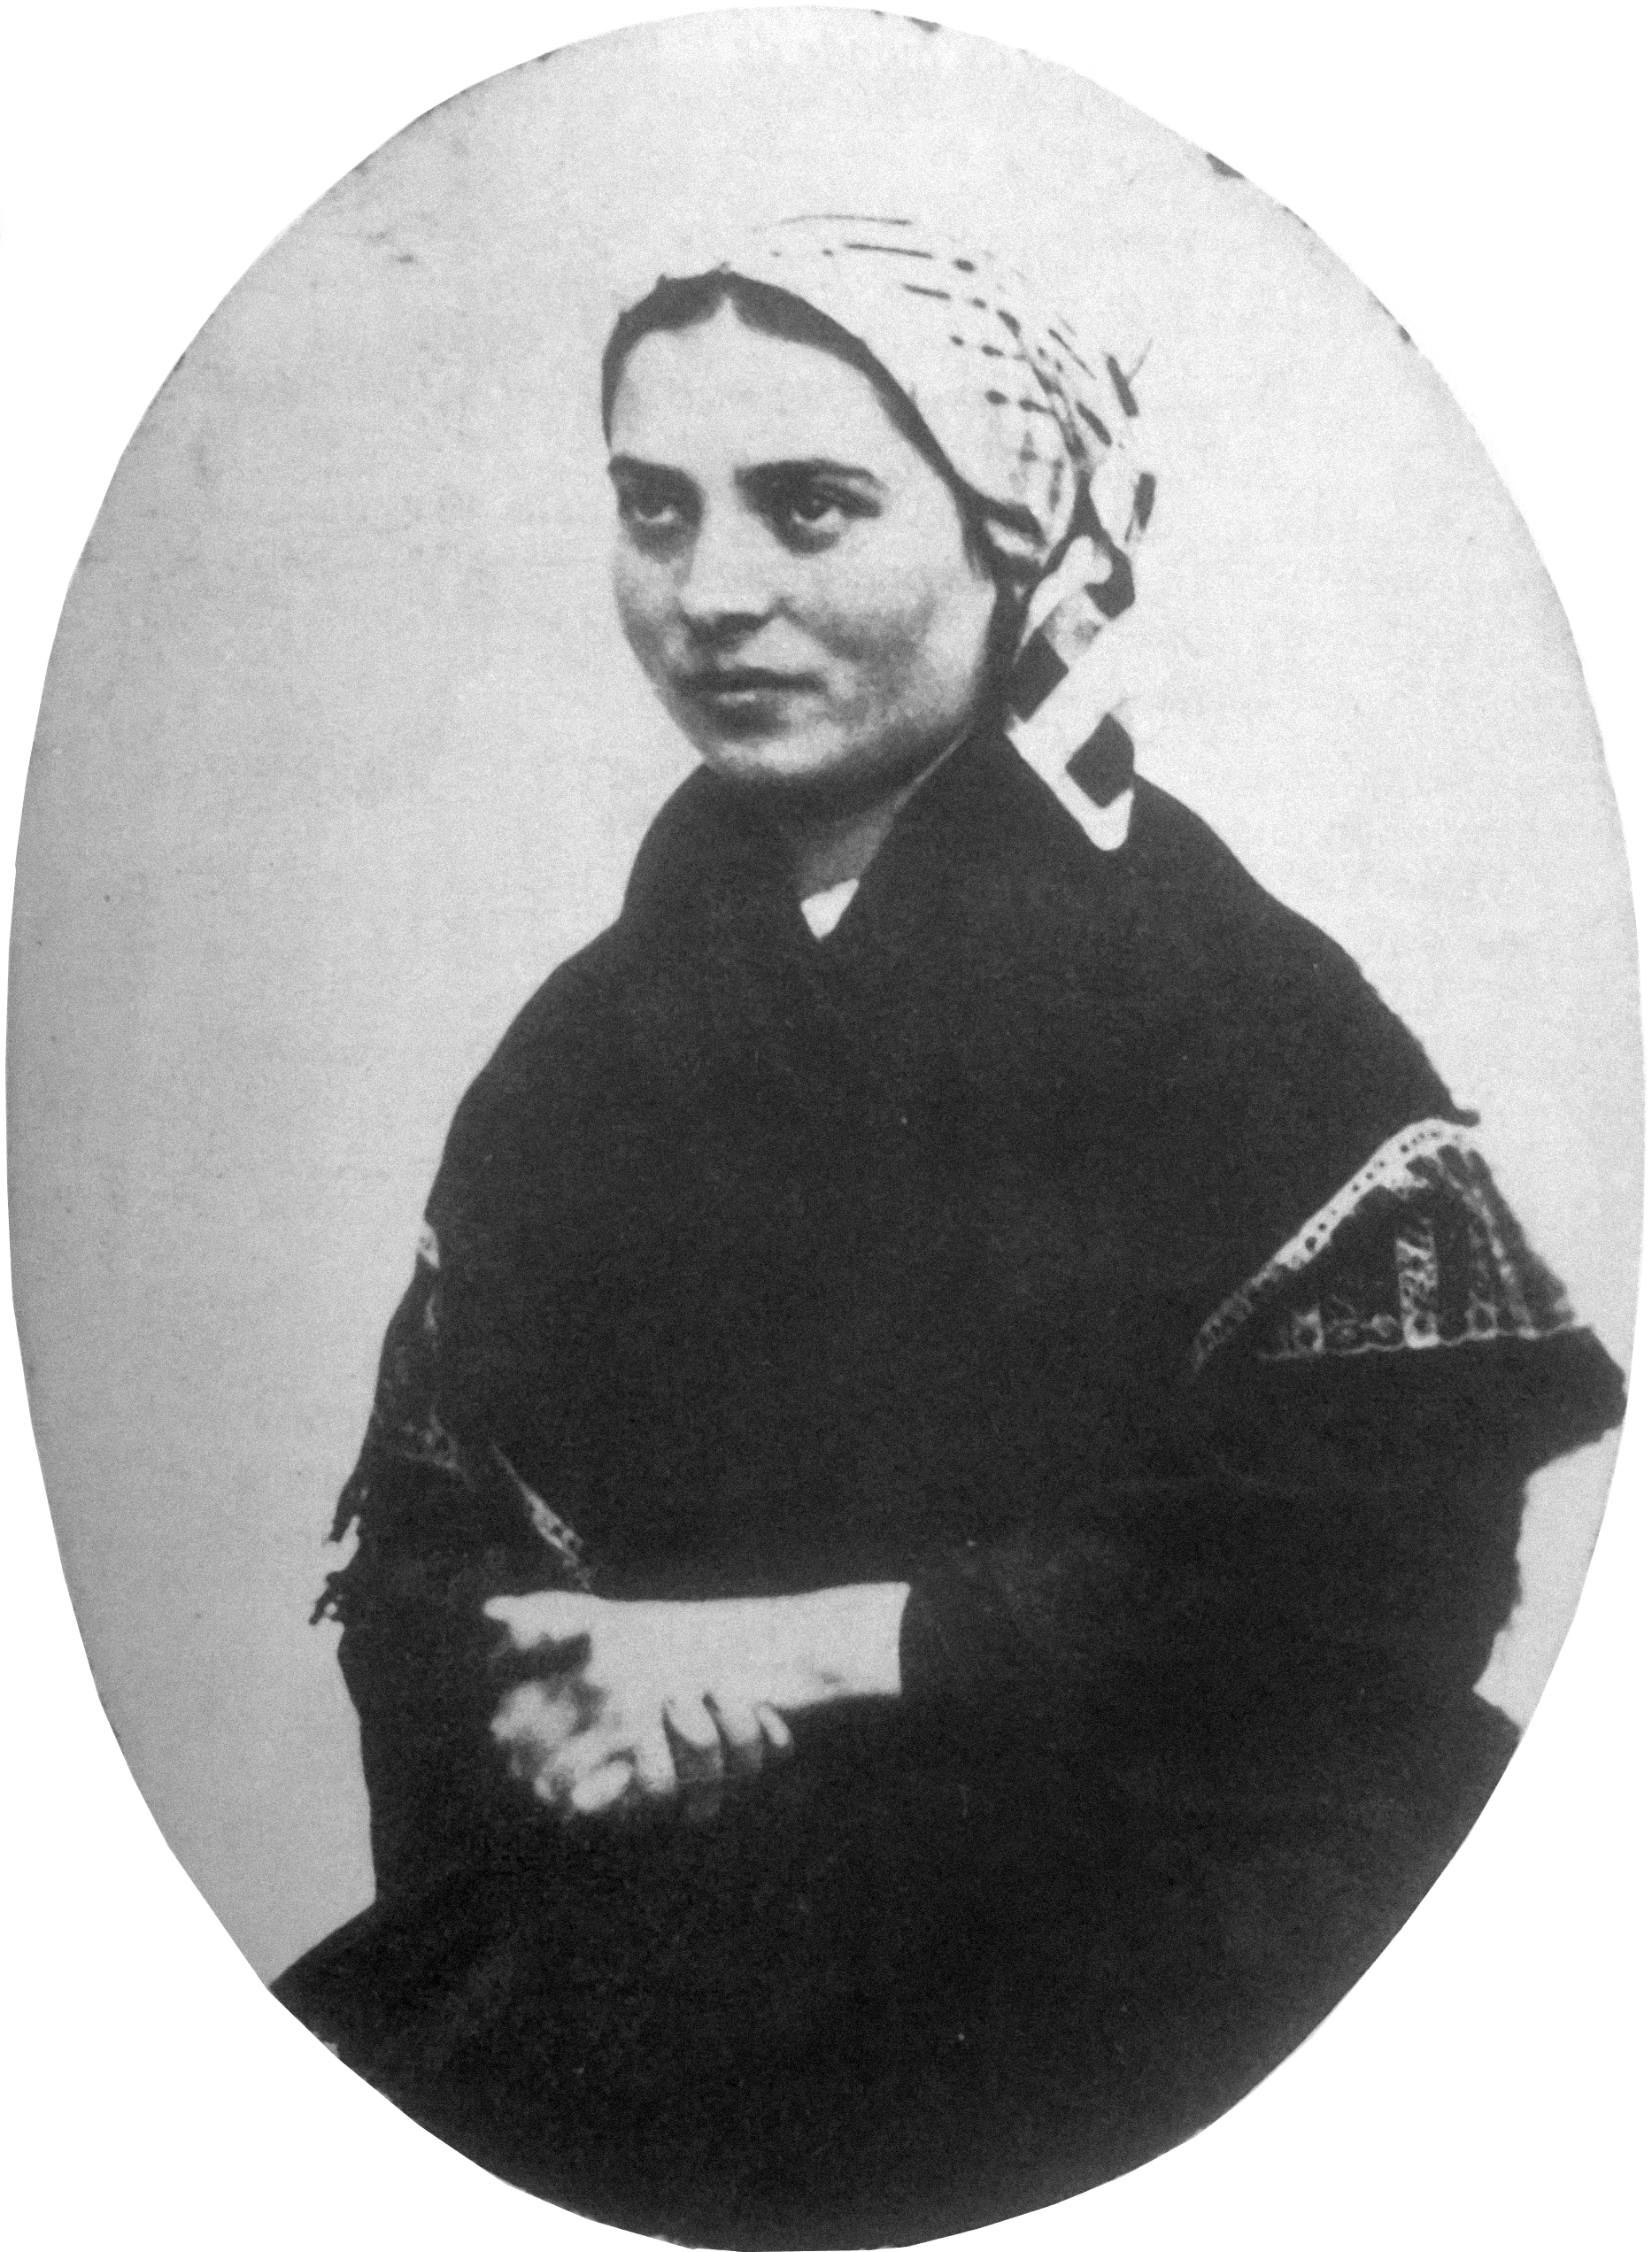 biography of saint bernadette soubirous Saint bernadette soubirous, 1844-79 by francis trochu, 9780895552532, available at book depository with free delivery worldwide.